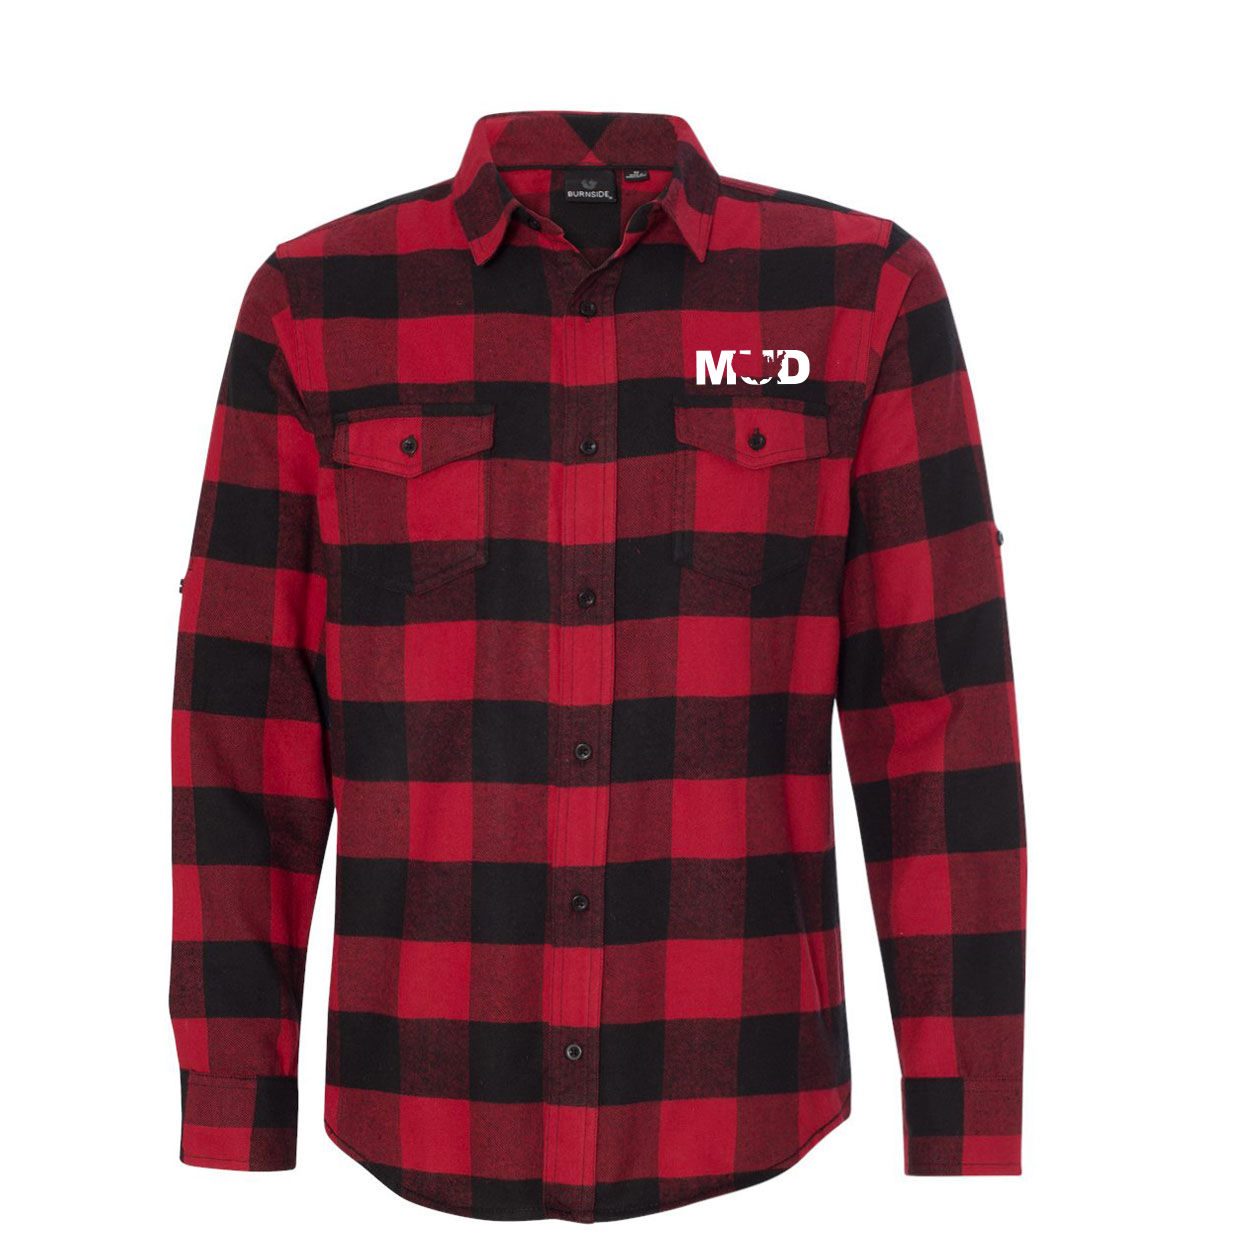 Mud United States Classic Unisex Long Sleeve Flannel Shirt Red/Black Buffalo (White Logo)